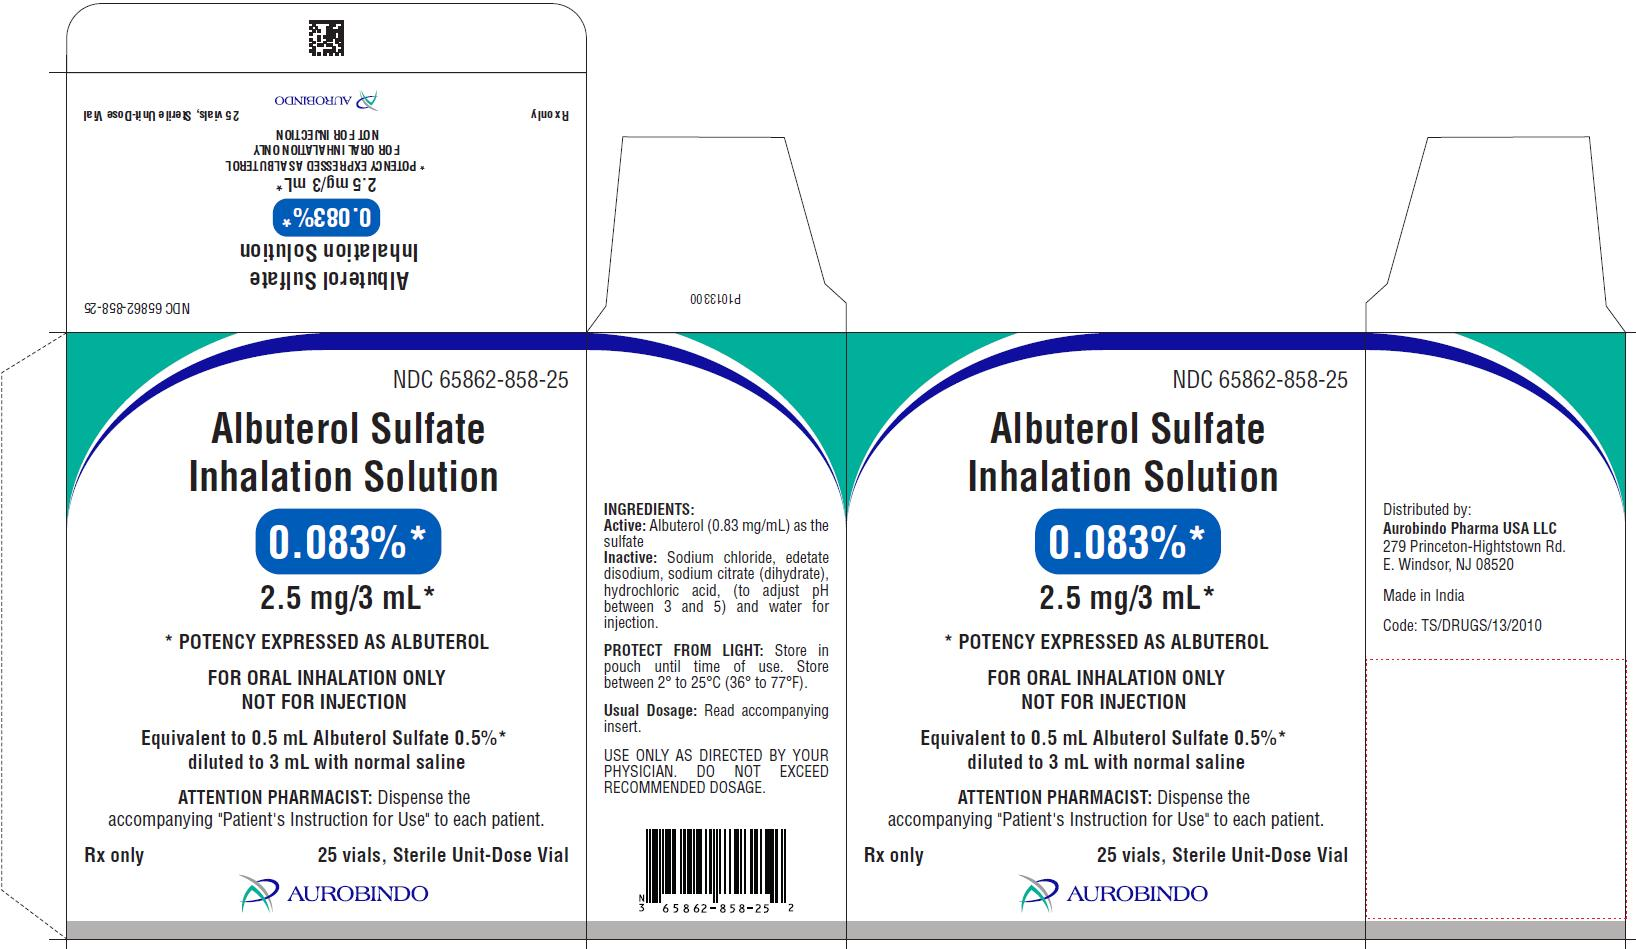 PACKAGE LABEL-PRINCIPAL DISPLAY PANEL - 0.083% (2.5 mg/3 mL) - Container-Carton (25 Vials)